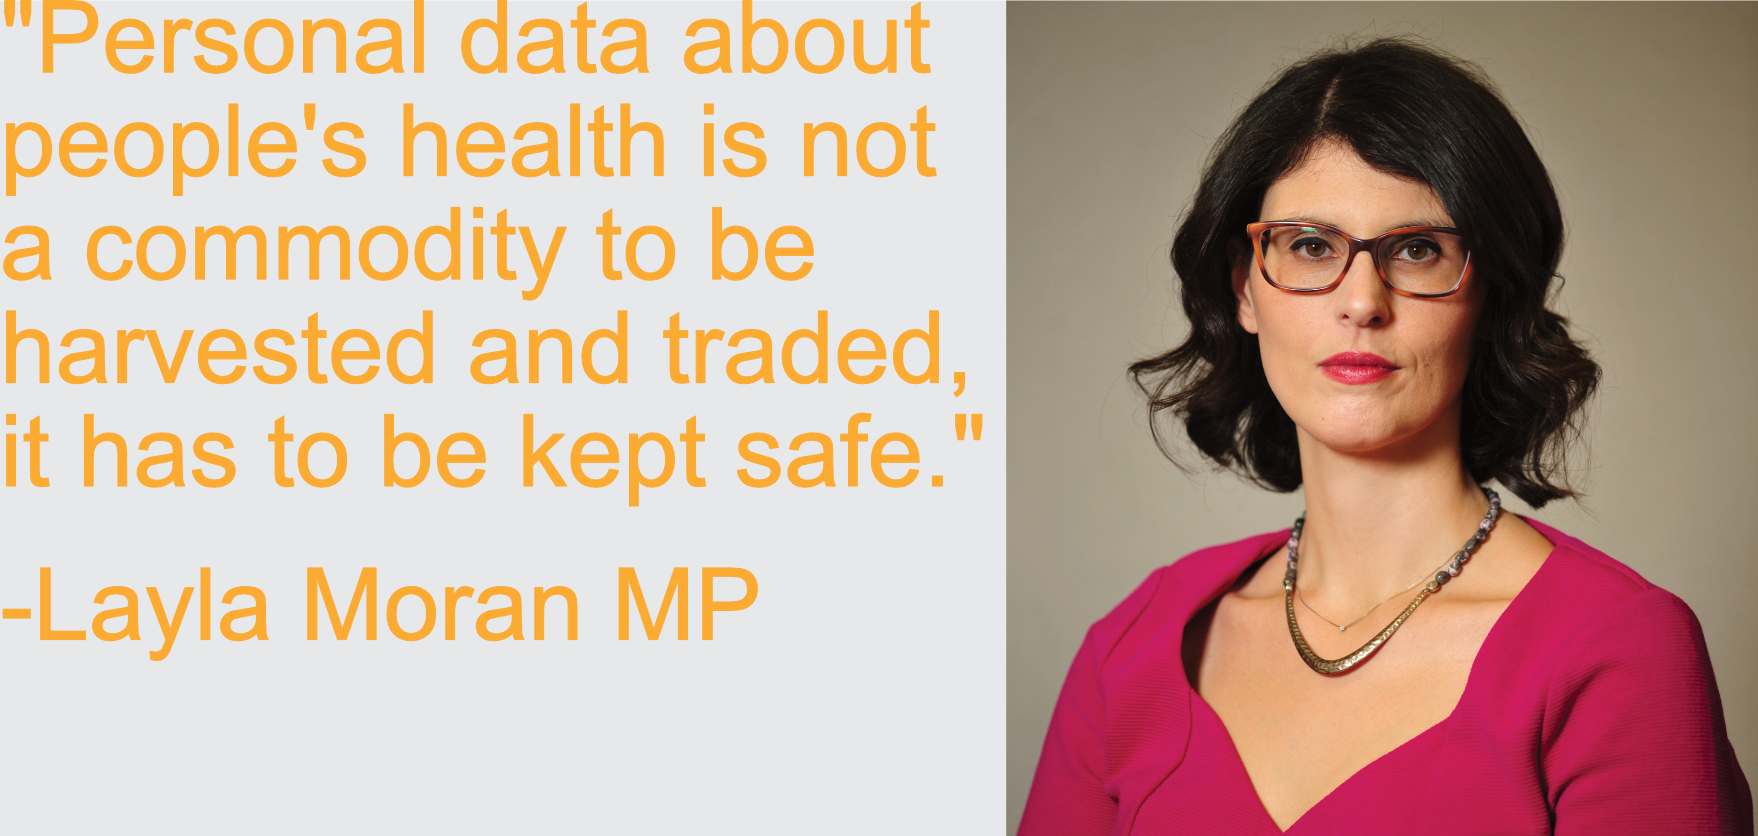 Personal data about people's health is not a commodity to be harvested and traded, it has to be kept safe